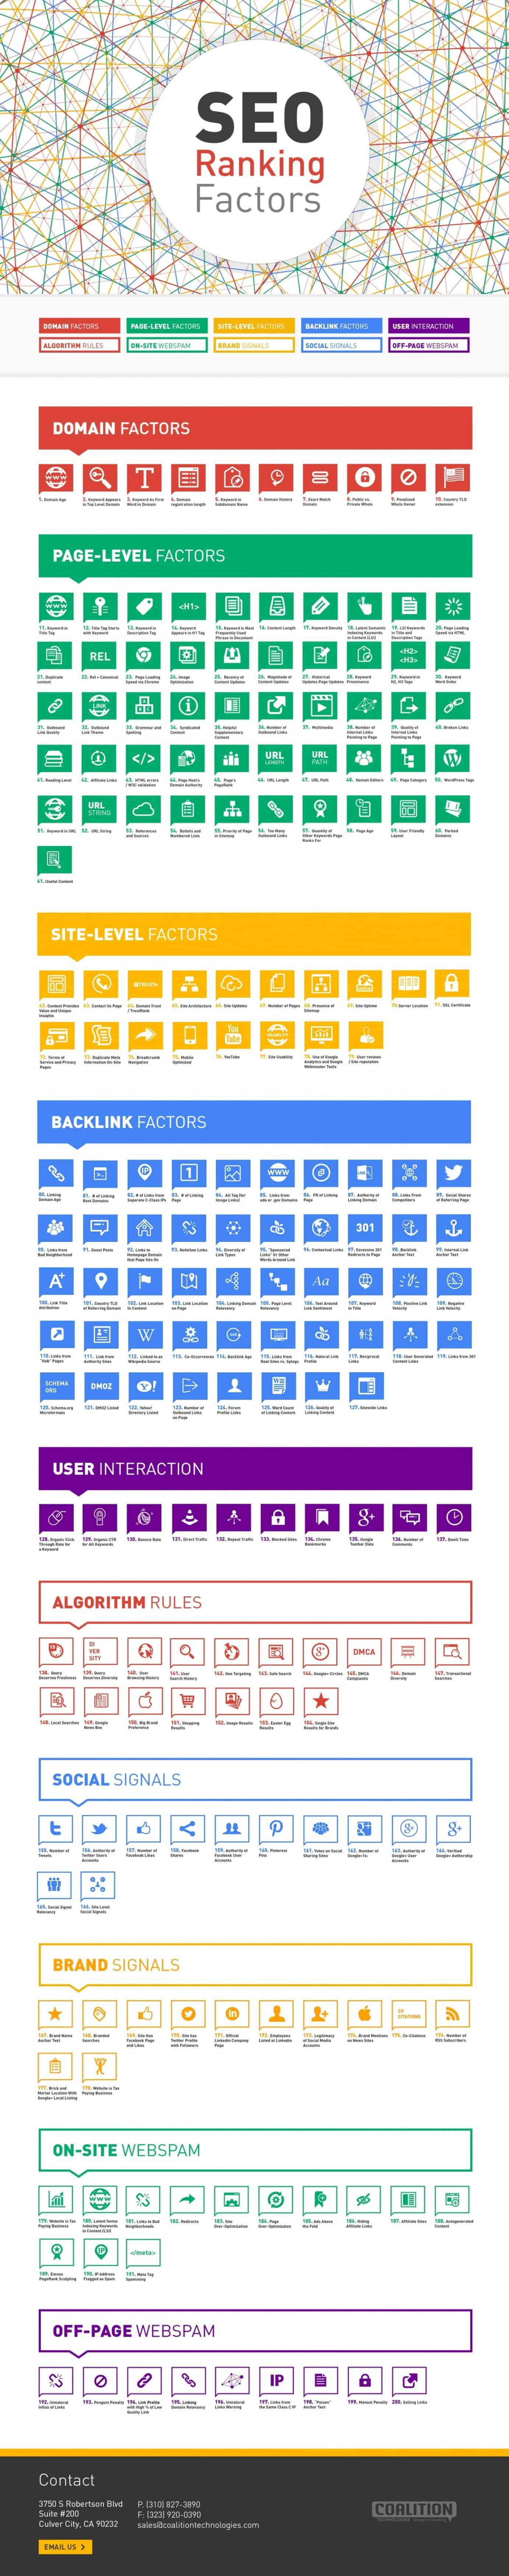 200 SEO Ranking Factors | Visual.ly